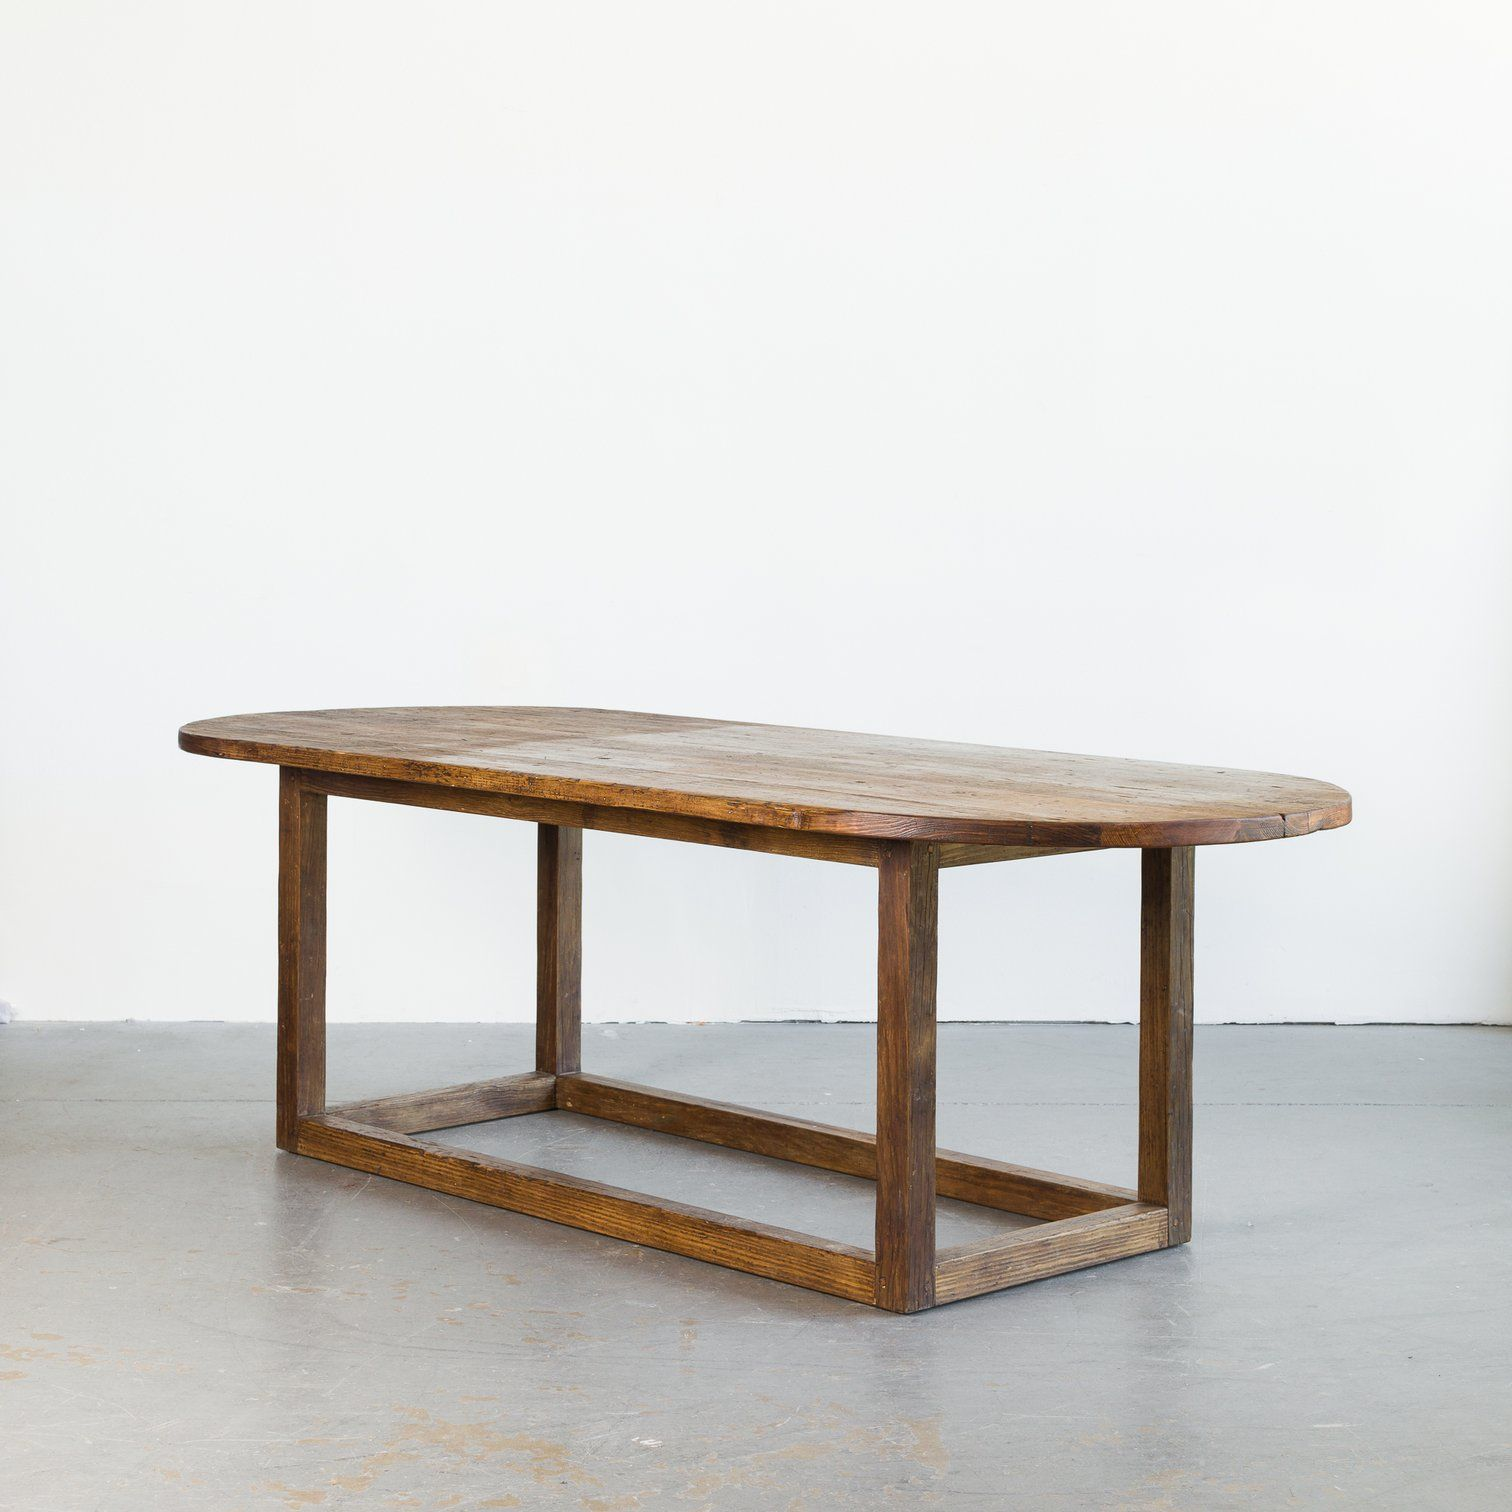 Woodlake Dining Table (With images) Dining table, Dining